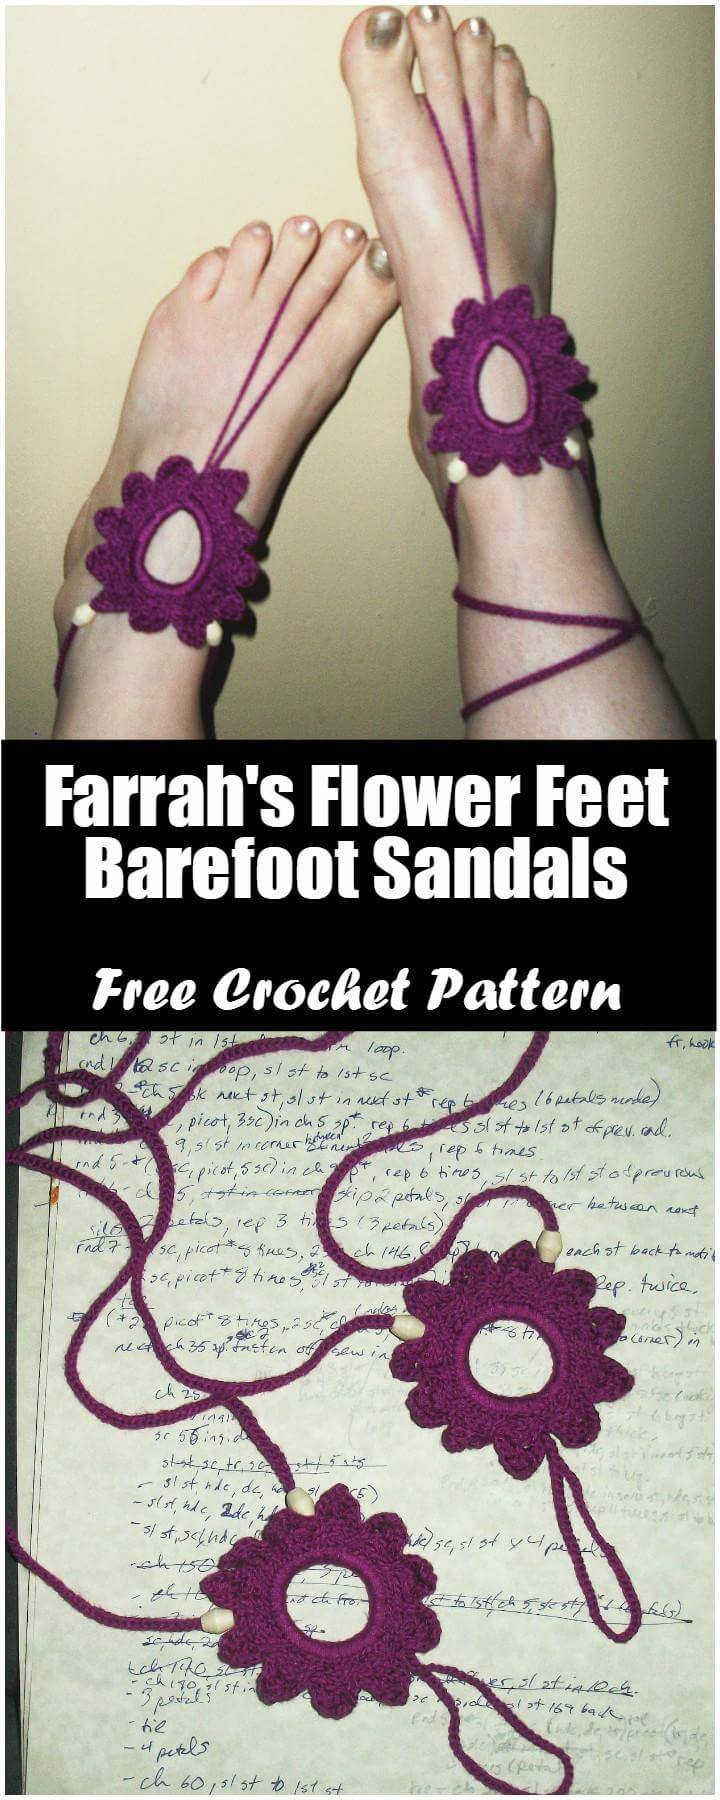 Crochet Farrah's Flower Feet Barefoot Sandals